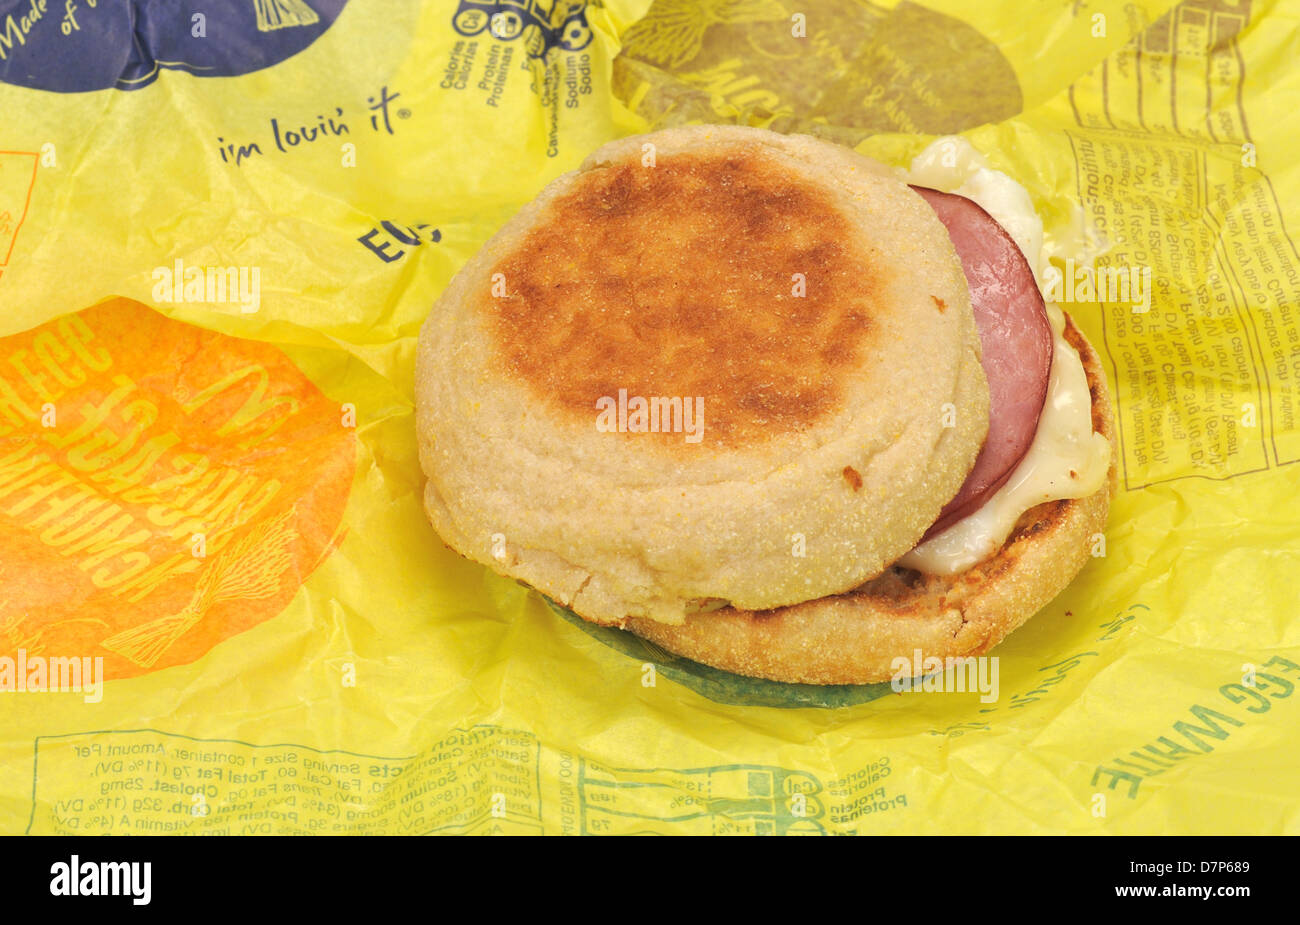 McDonald's Egg White Delight McMuffin breakfast sandwich with canadian bacon on paper wrapper. USA - Stock Image